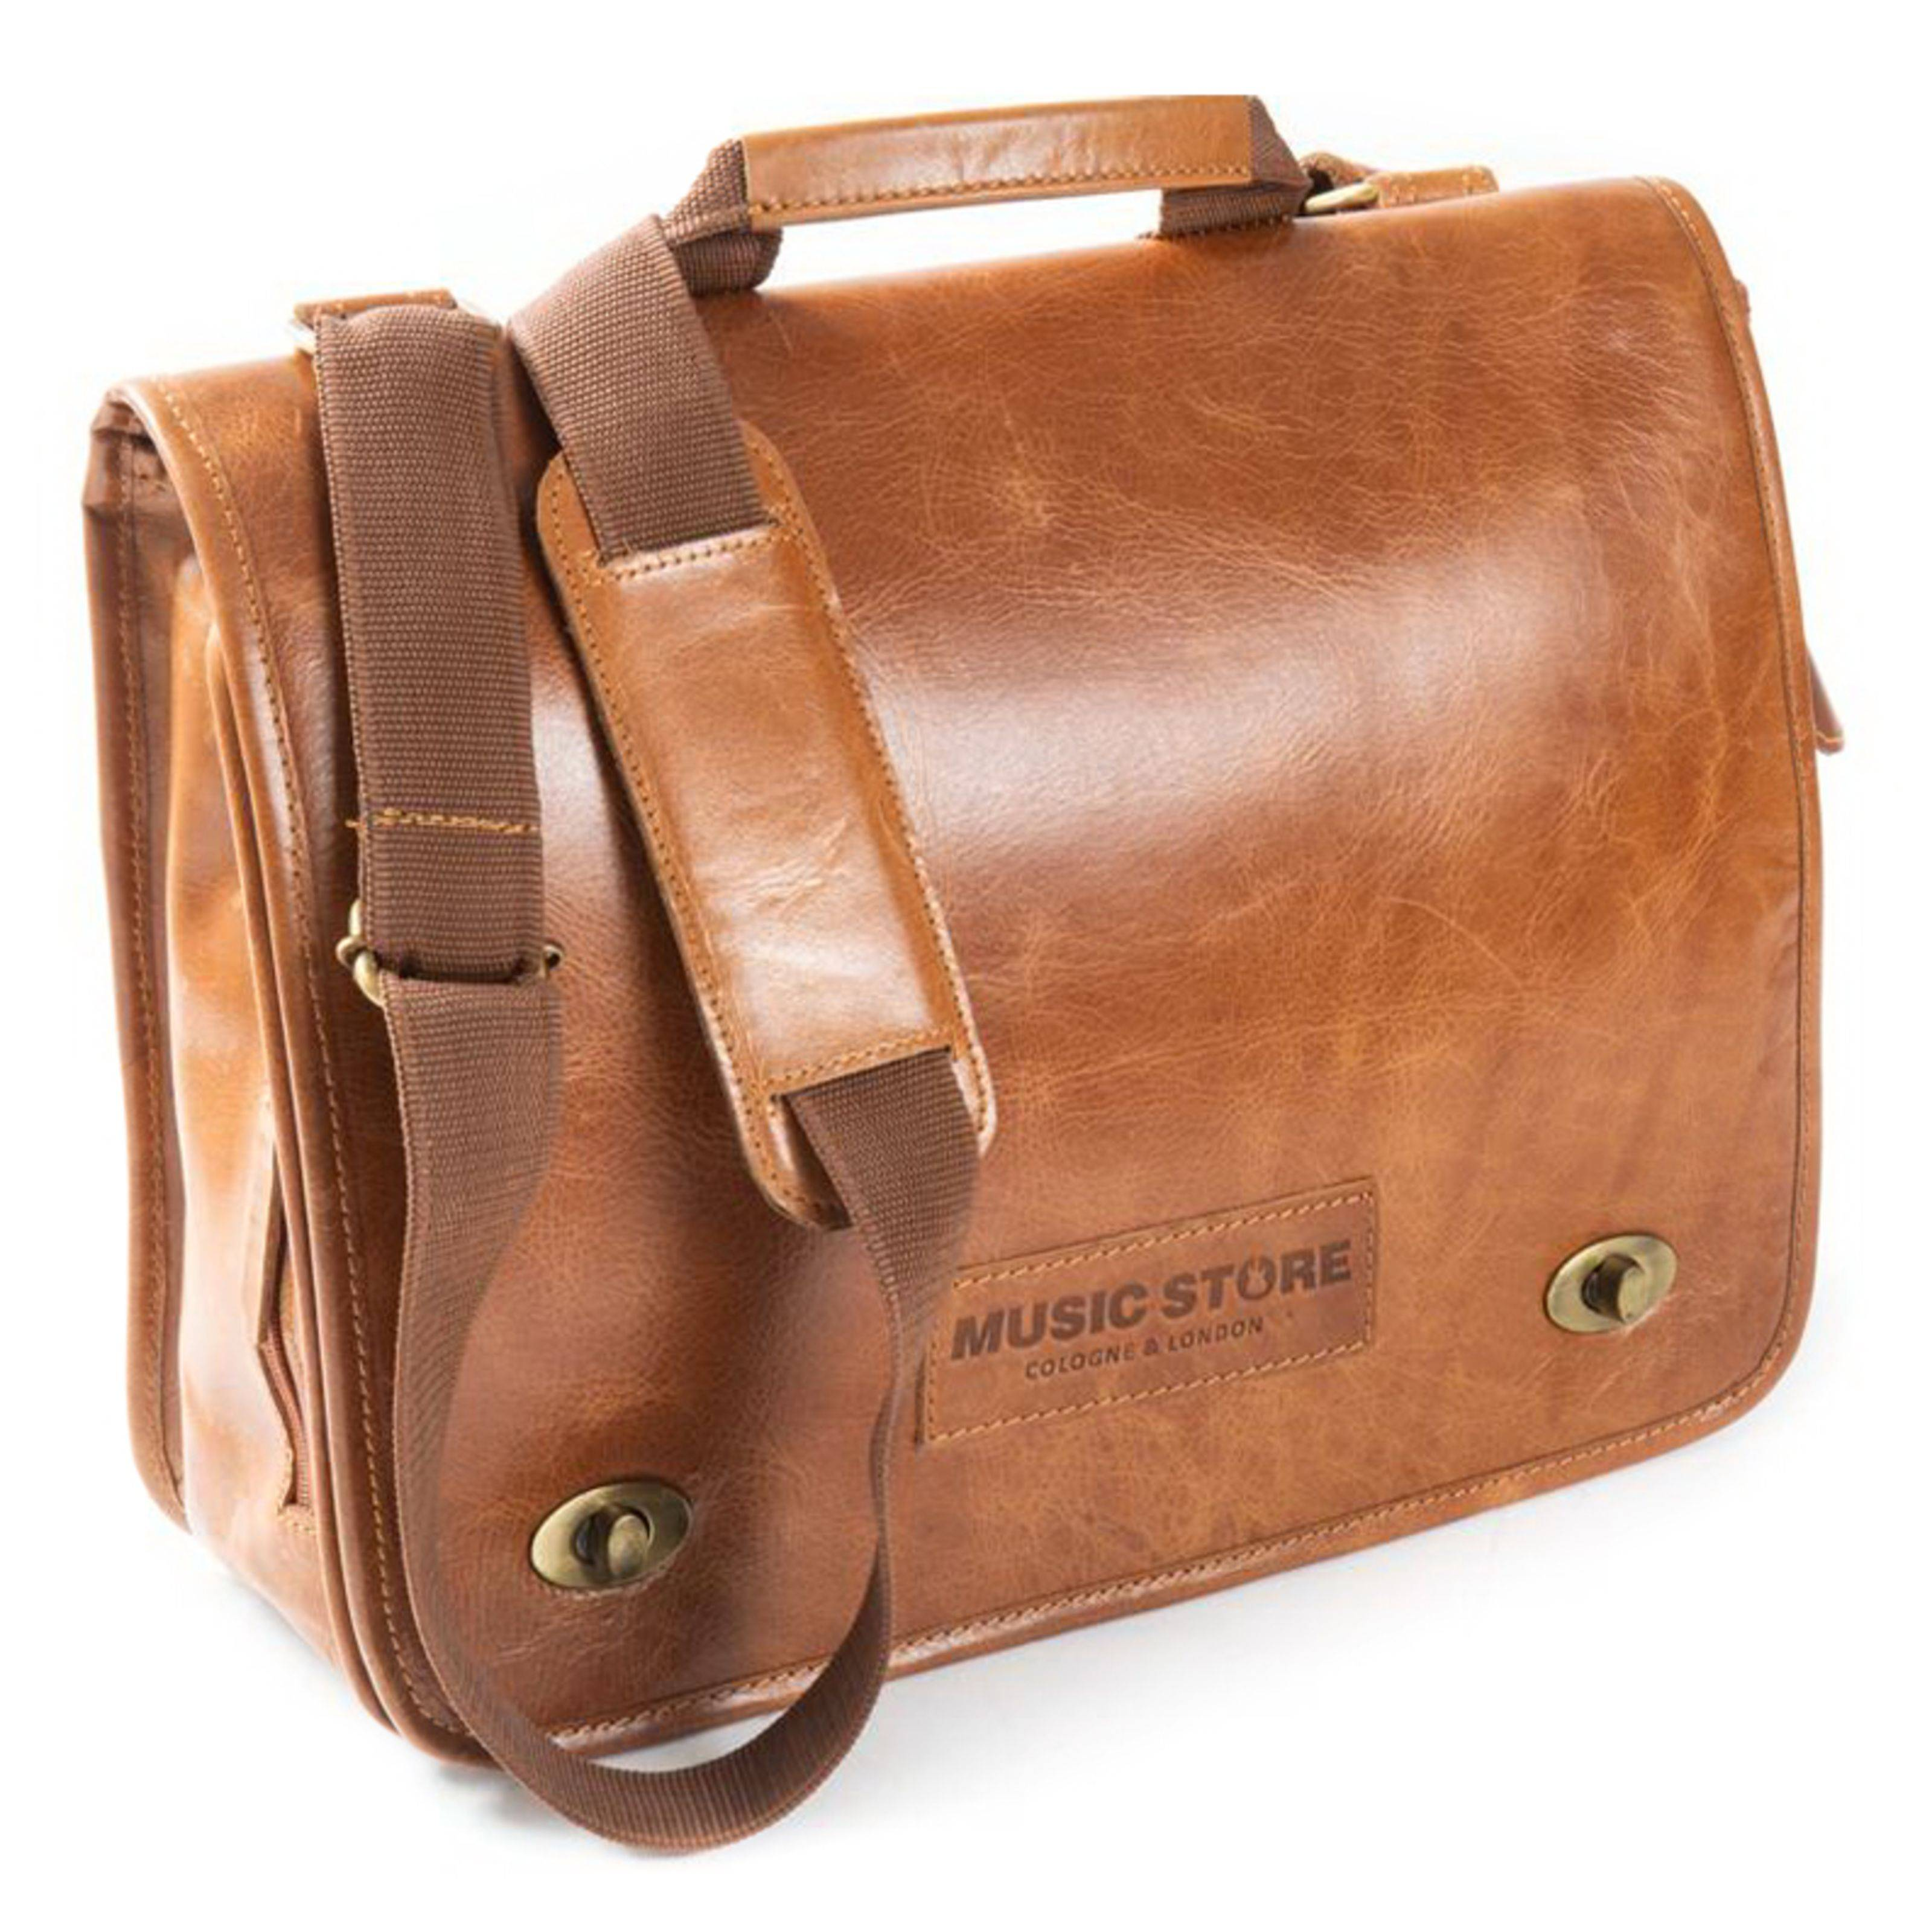 MUSIC STORE Executive Bag Leather Natural EXB-01MTN/L